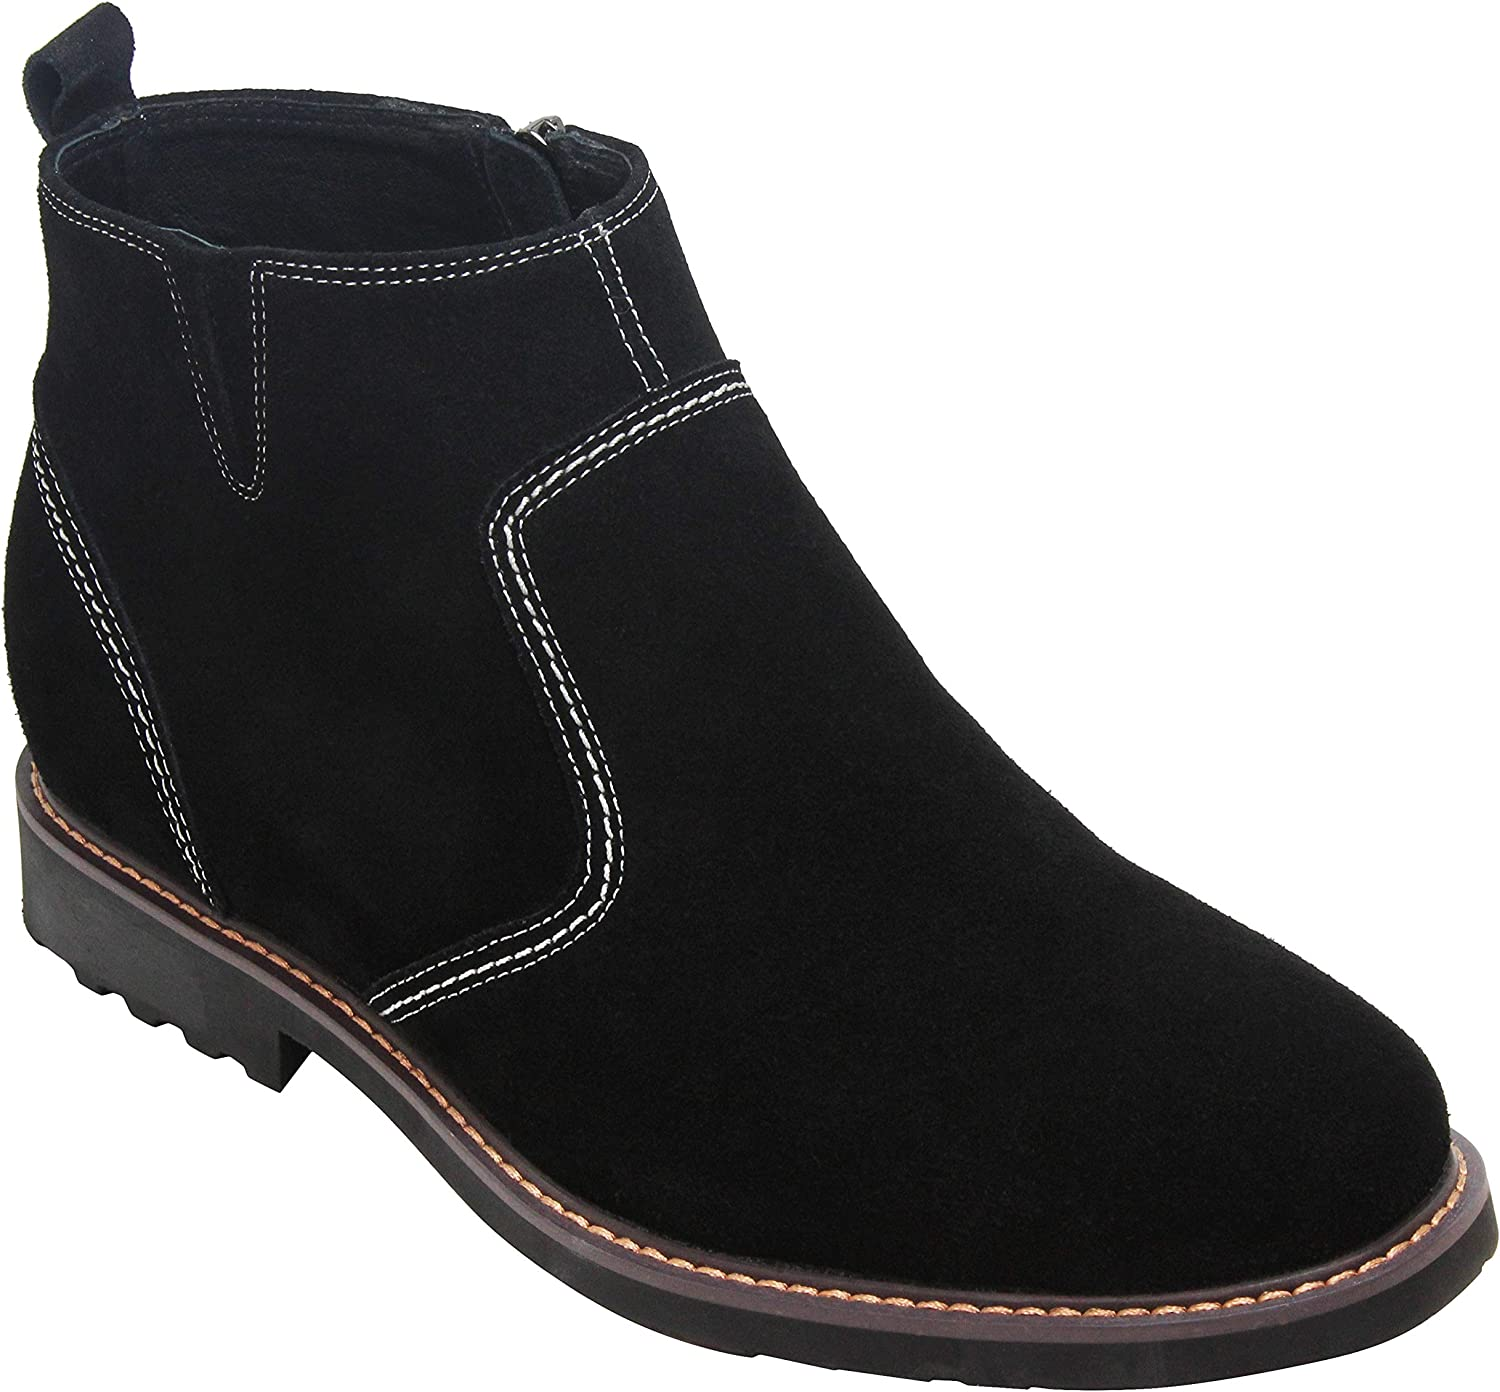 CALTO Men's Invisible Height Increasing Elevator shoes - Black Nubuck Leather Mid-top Casual Zipper Boots - 3.2 Inches Taller - Y41082